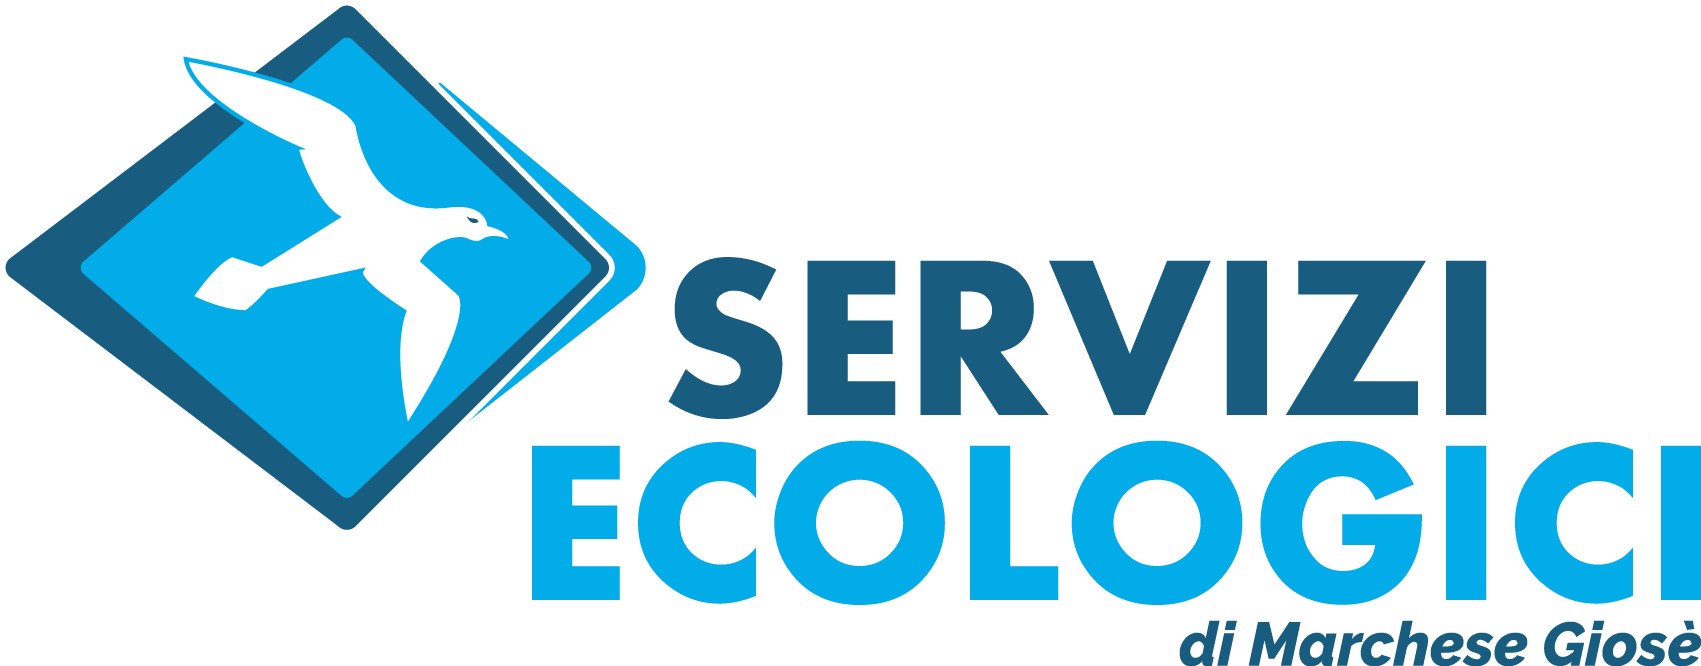 servecomarchese.it